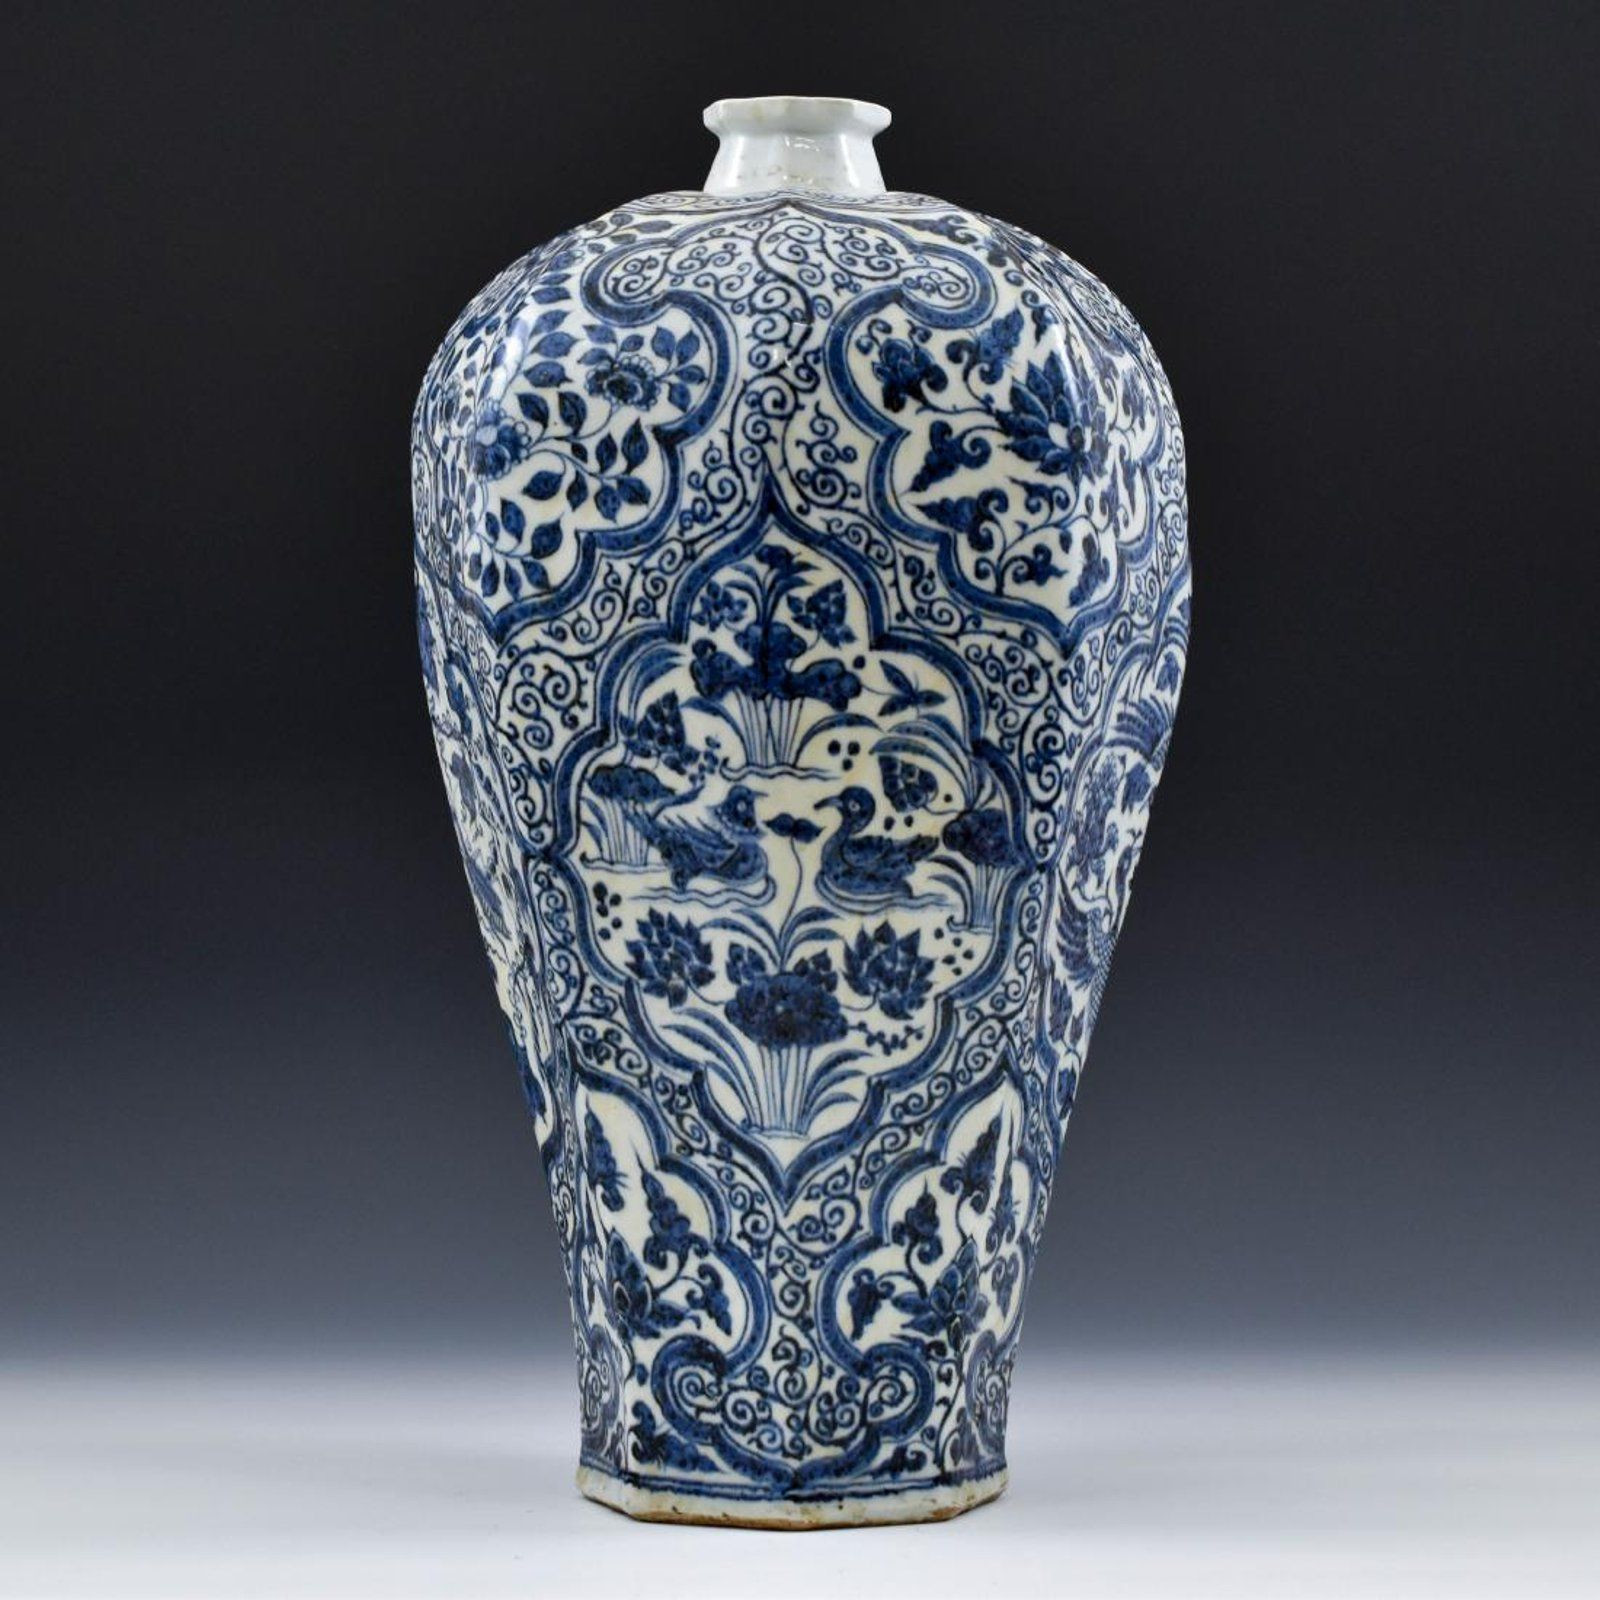 bohemia crystal vase price of 23 blue crystal vase the weekly world in ming dynasty blue and white octagonal meiping vase